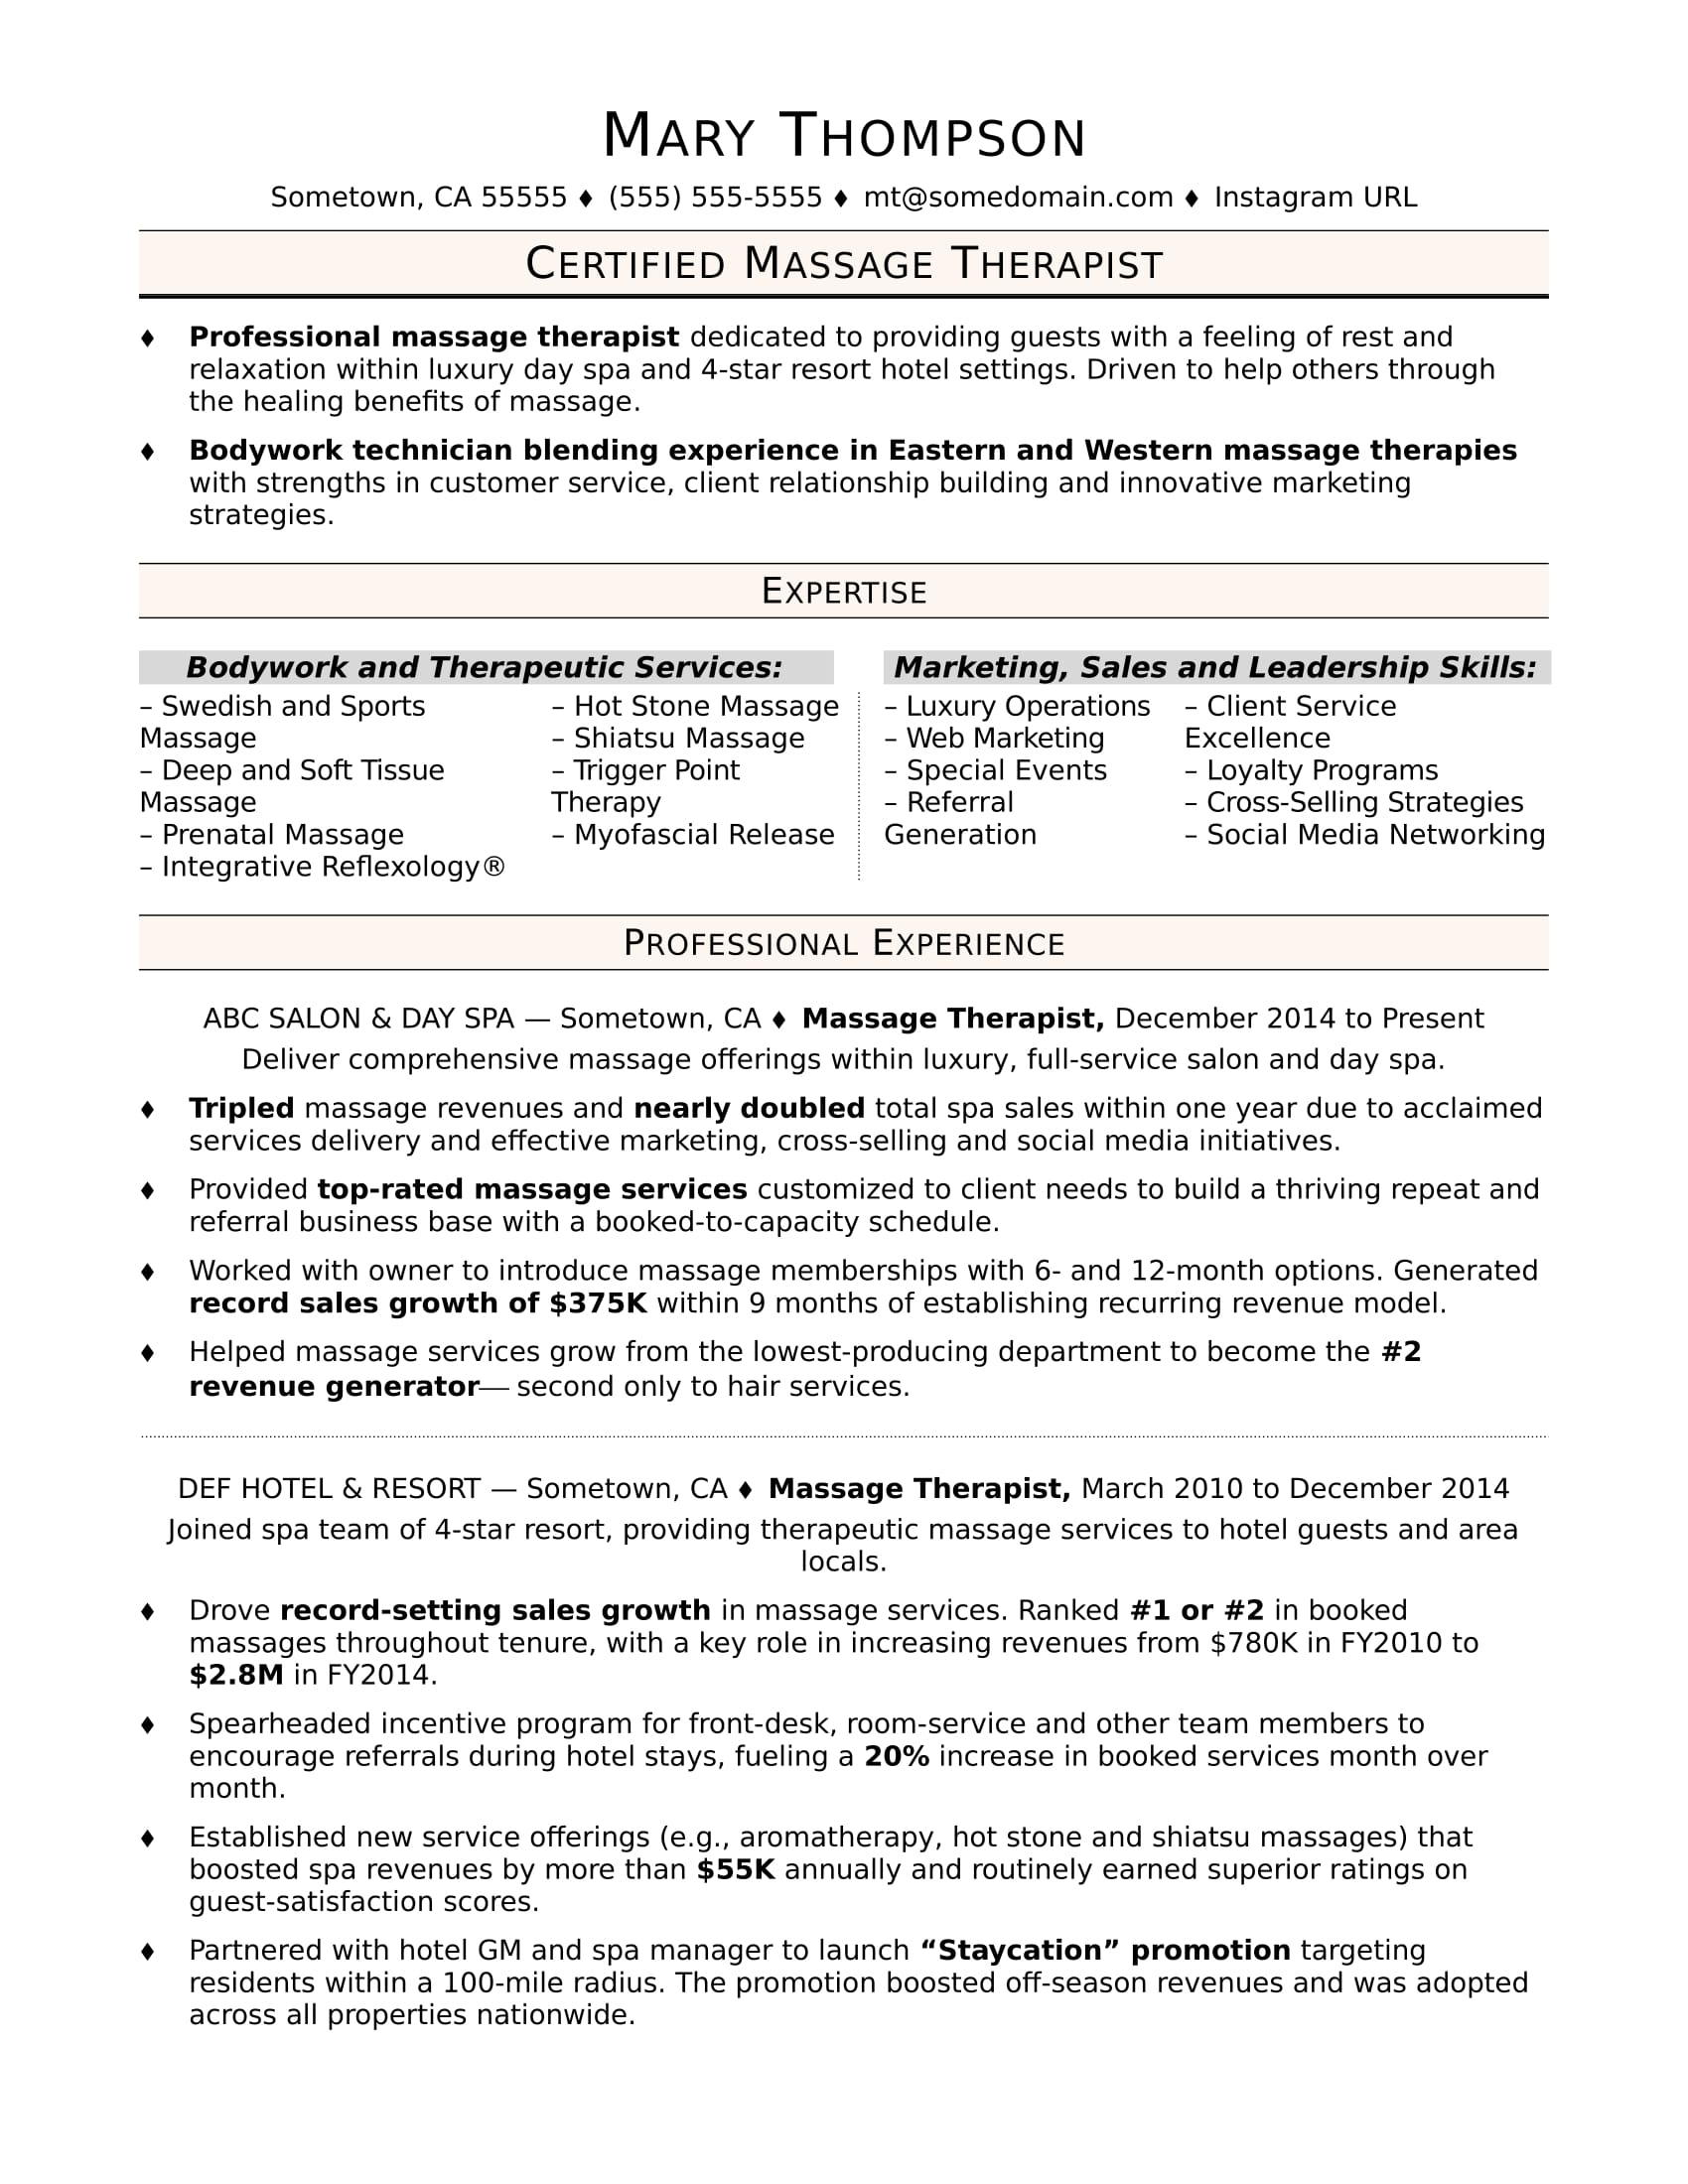 Cover Letter Examples For Massage Therapist Resumes